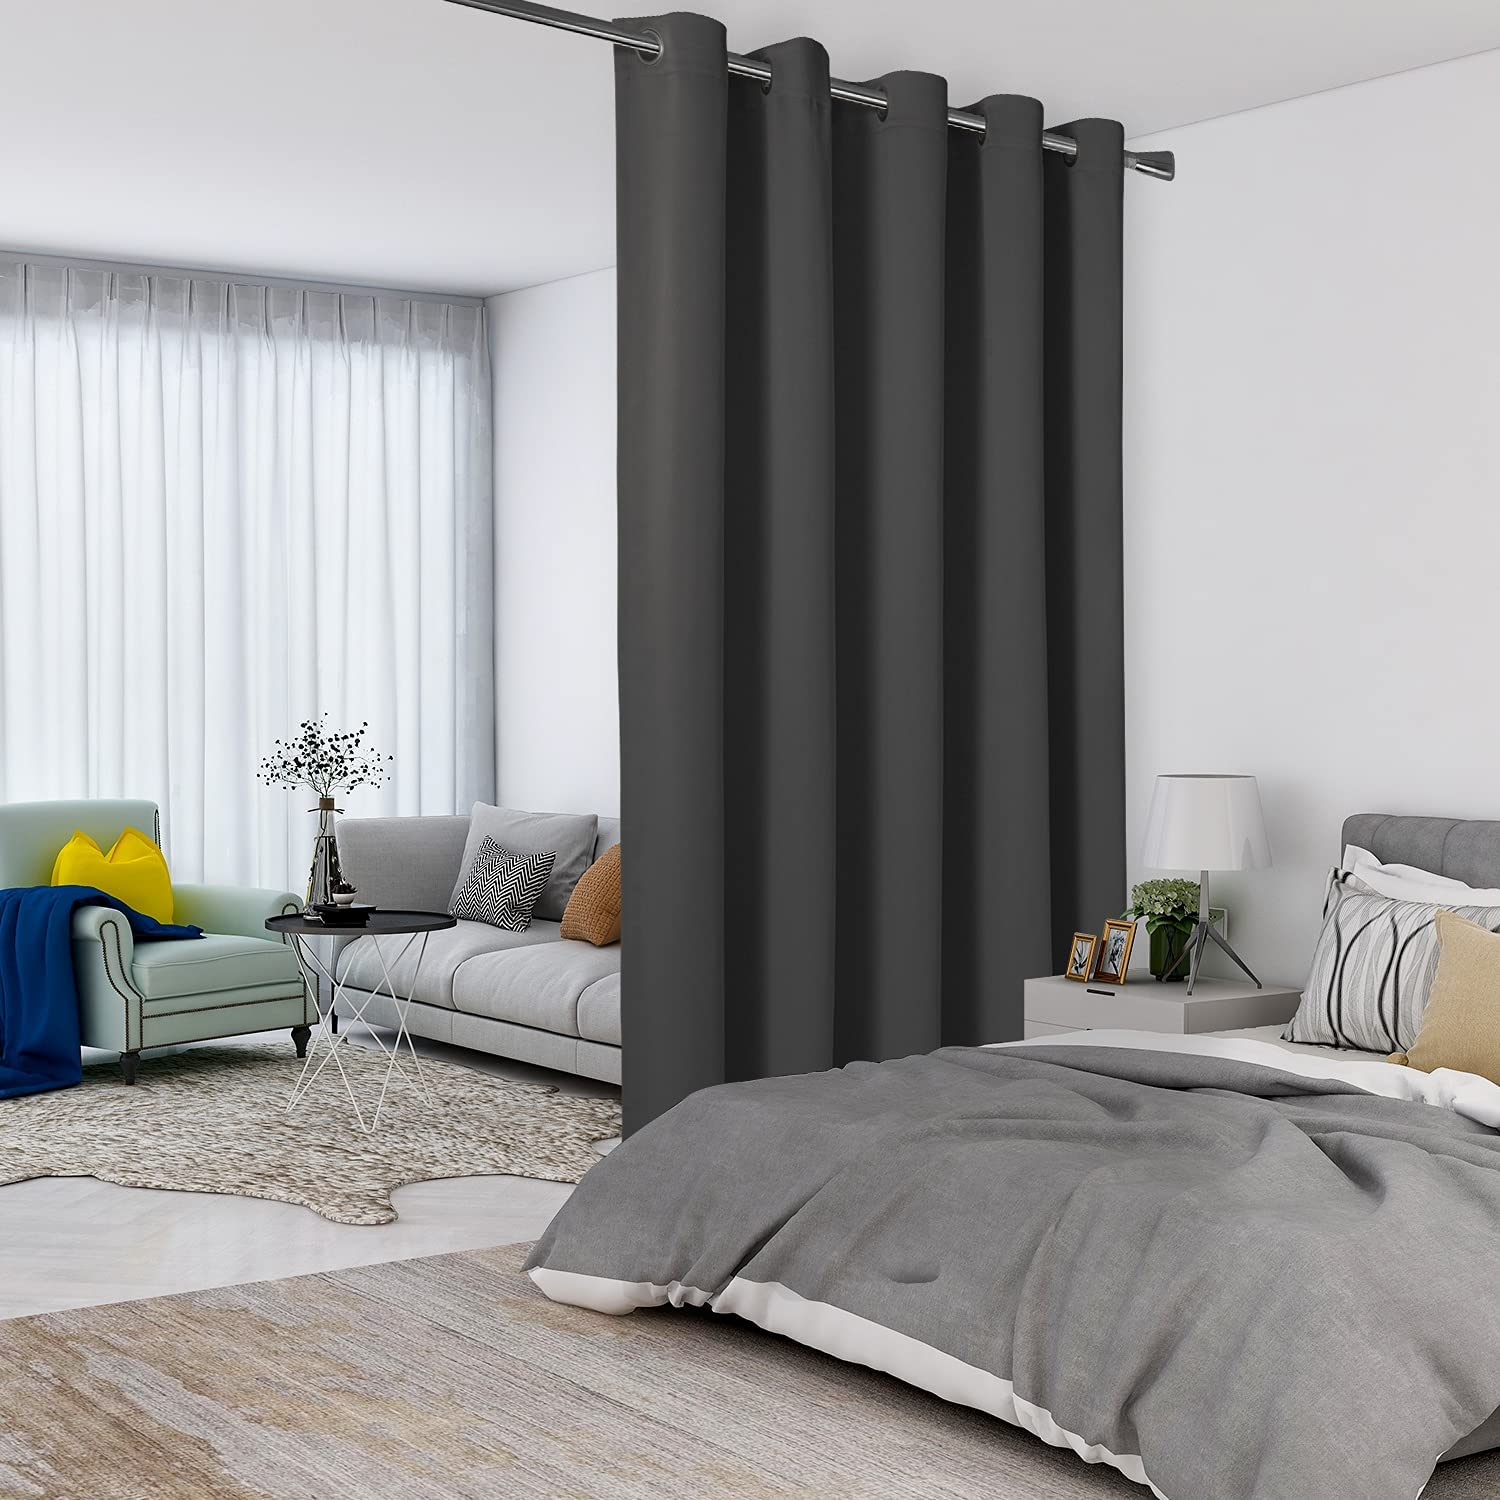 LORDTEX Dark Grey Room Divider Oakland Mall Courier shipping free shipping Curtains Roo Total - Privacy Wall